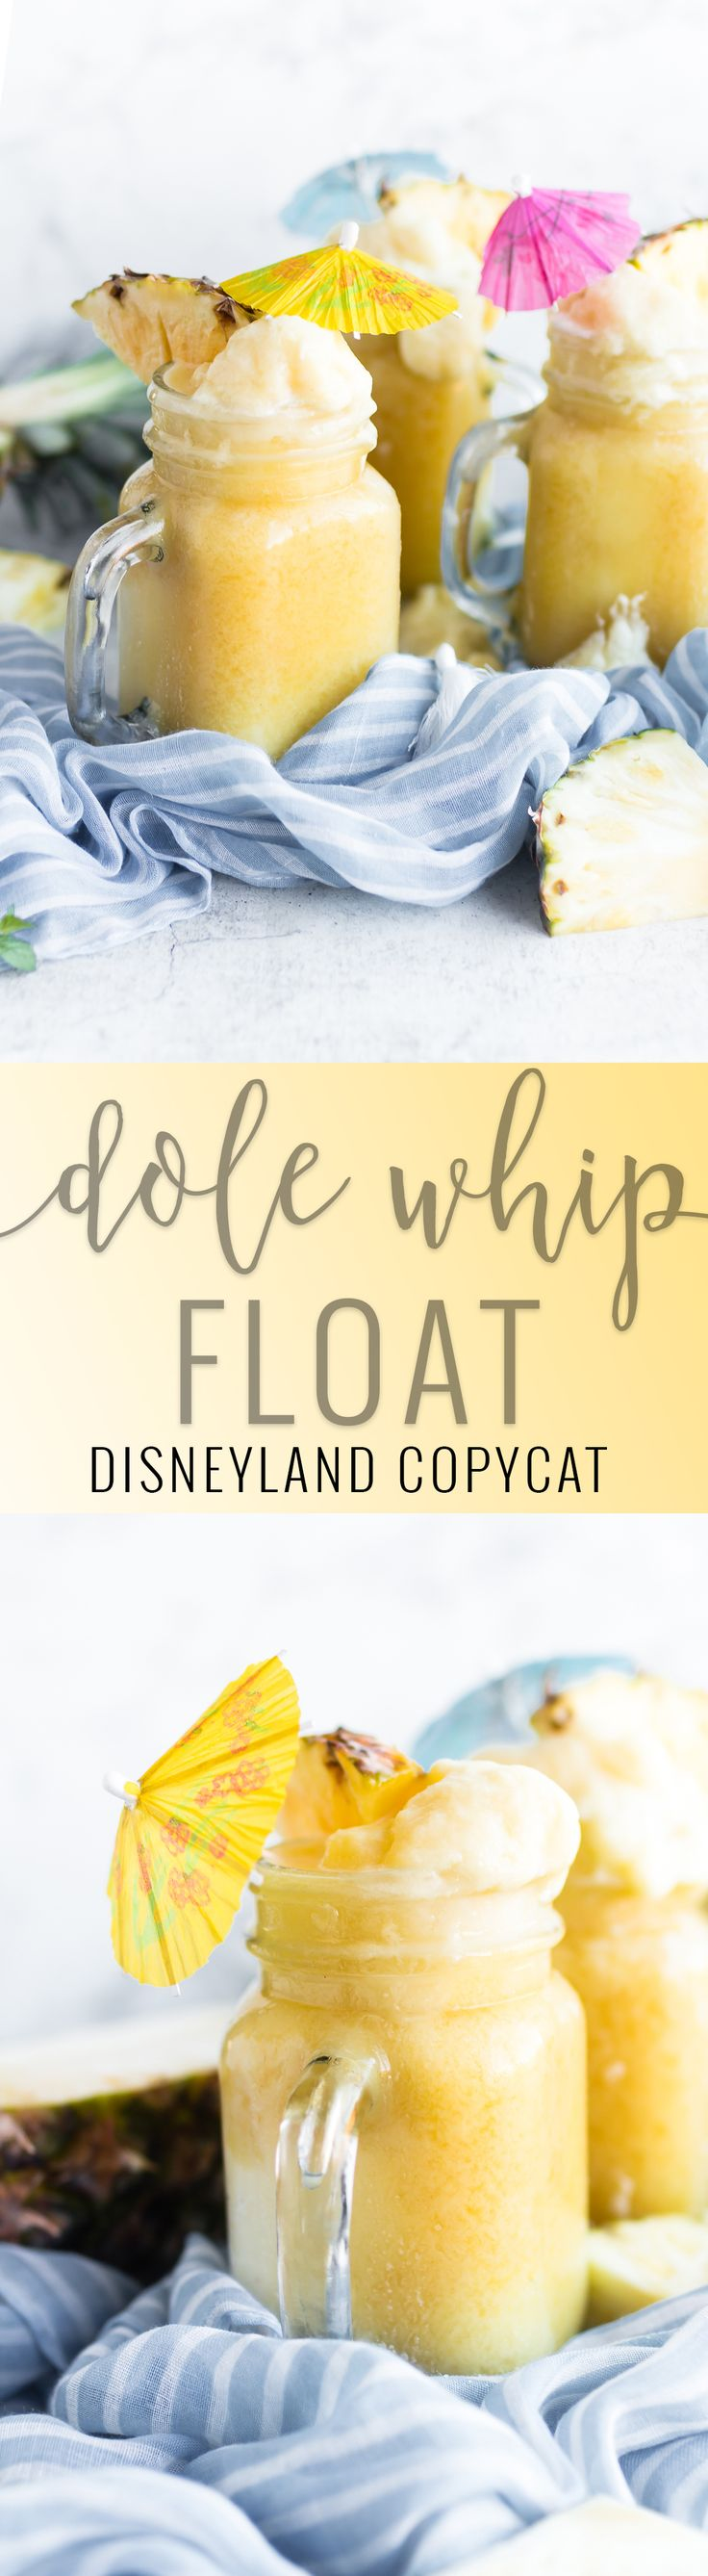 Disneyland Copycat - Dole Whip Float   how to make a homemade dole whip float   copycat Disney recipes   homemade Disney recipes   dole whip float recipes   Disney recipes at home   how to recreate a Disney dole whip float    Oh So Delicioso